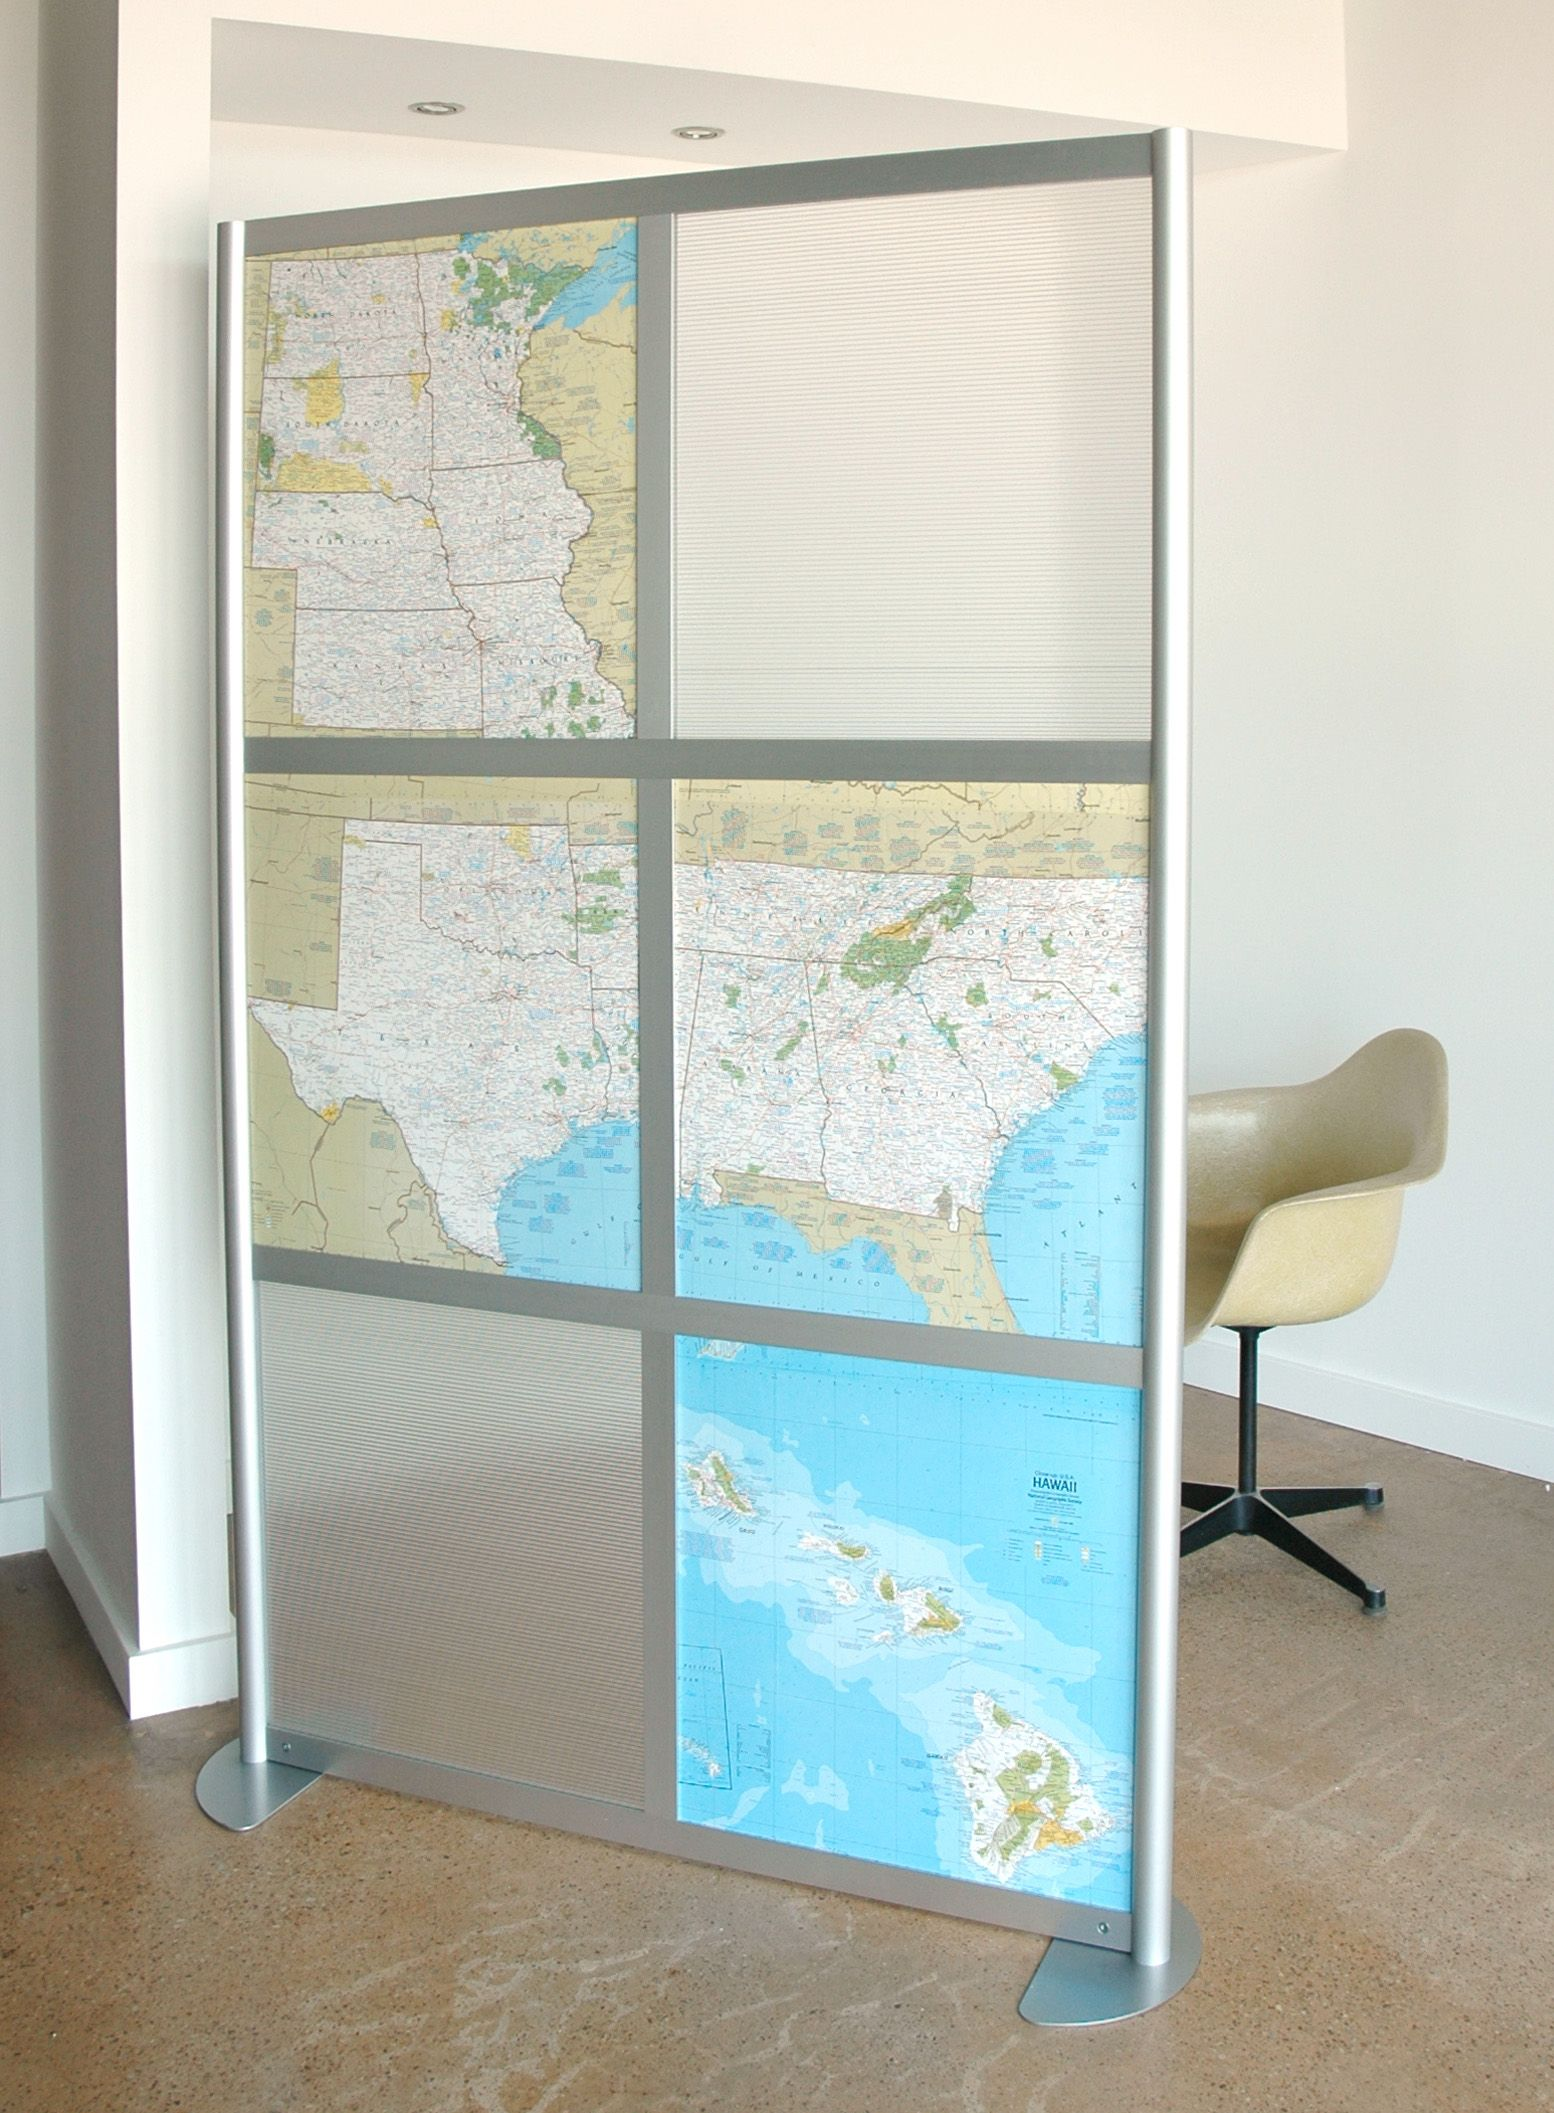 Diy panels with maps for loftwall divider screen Room divider wall ideas